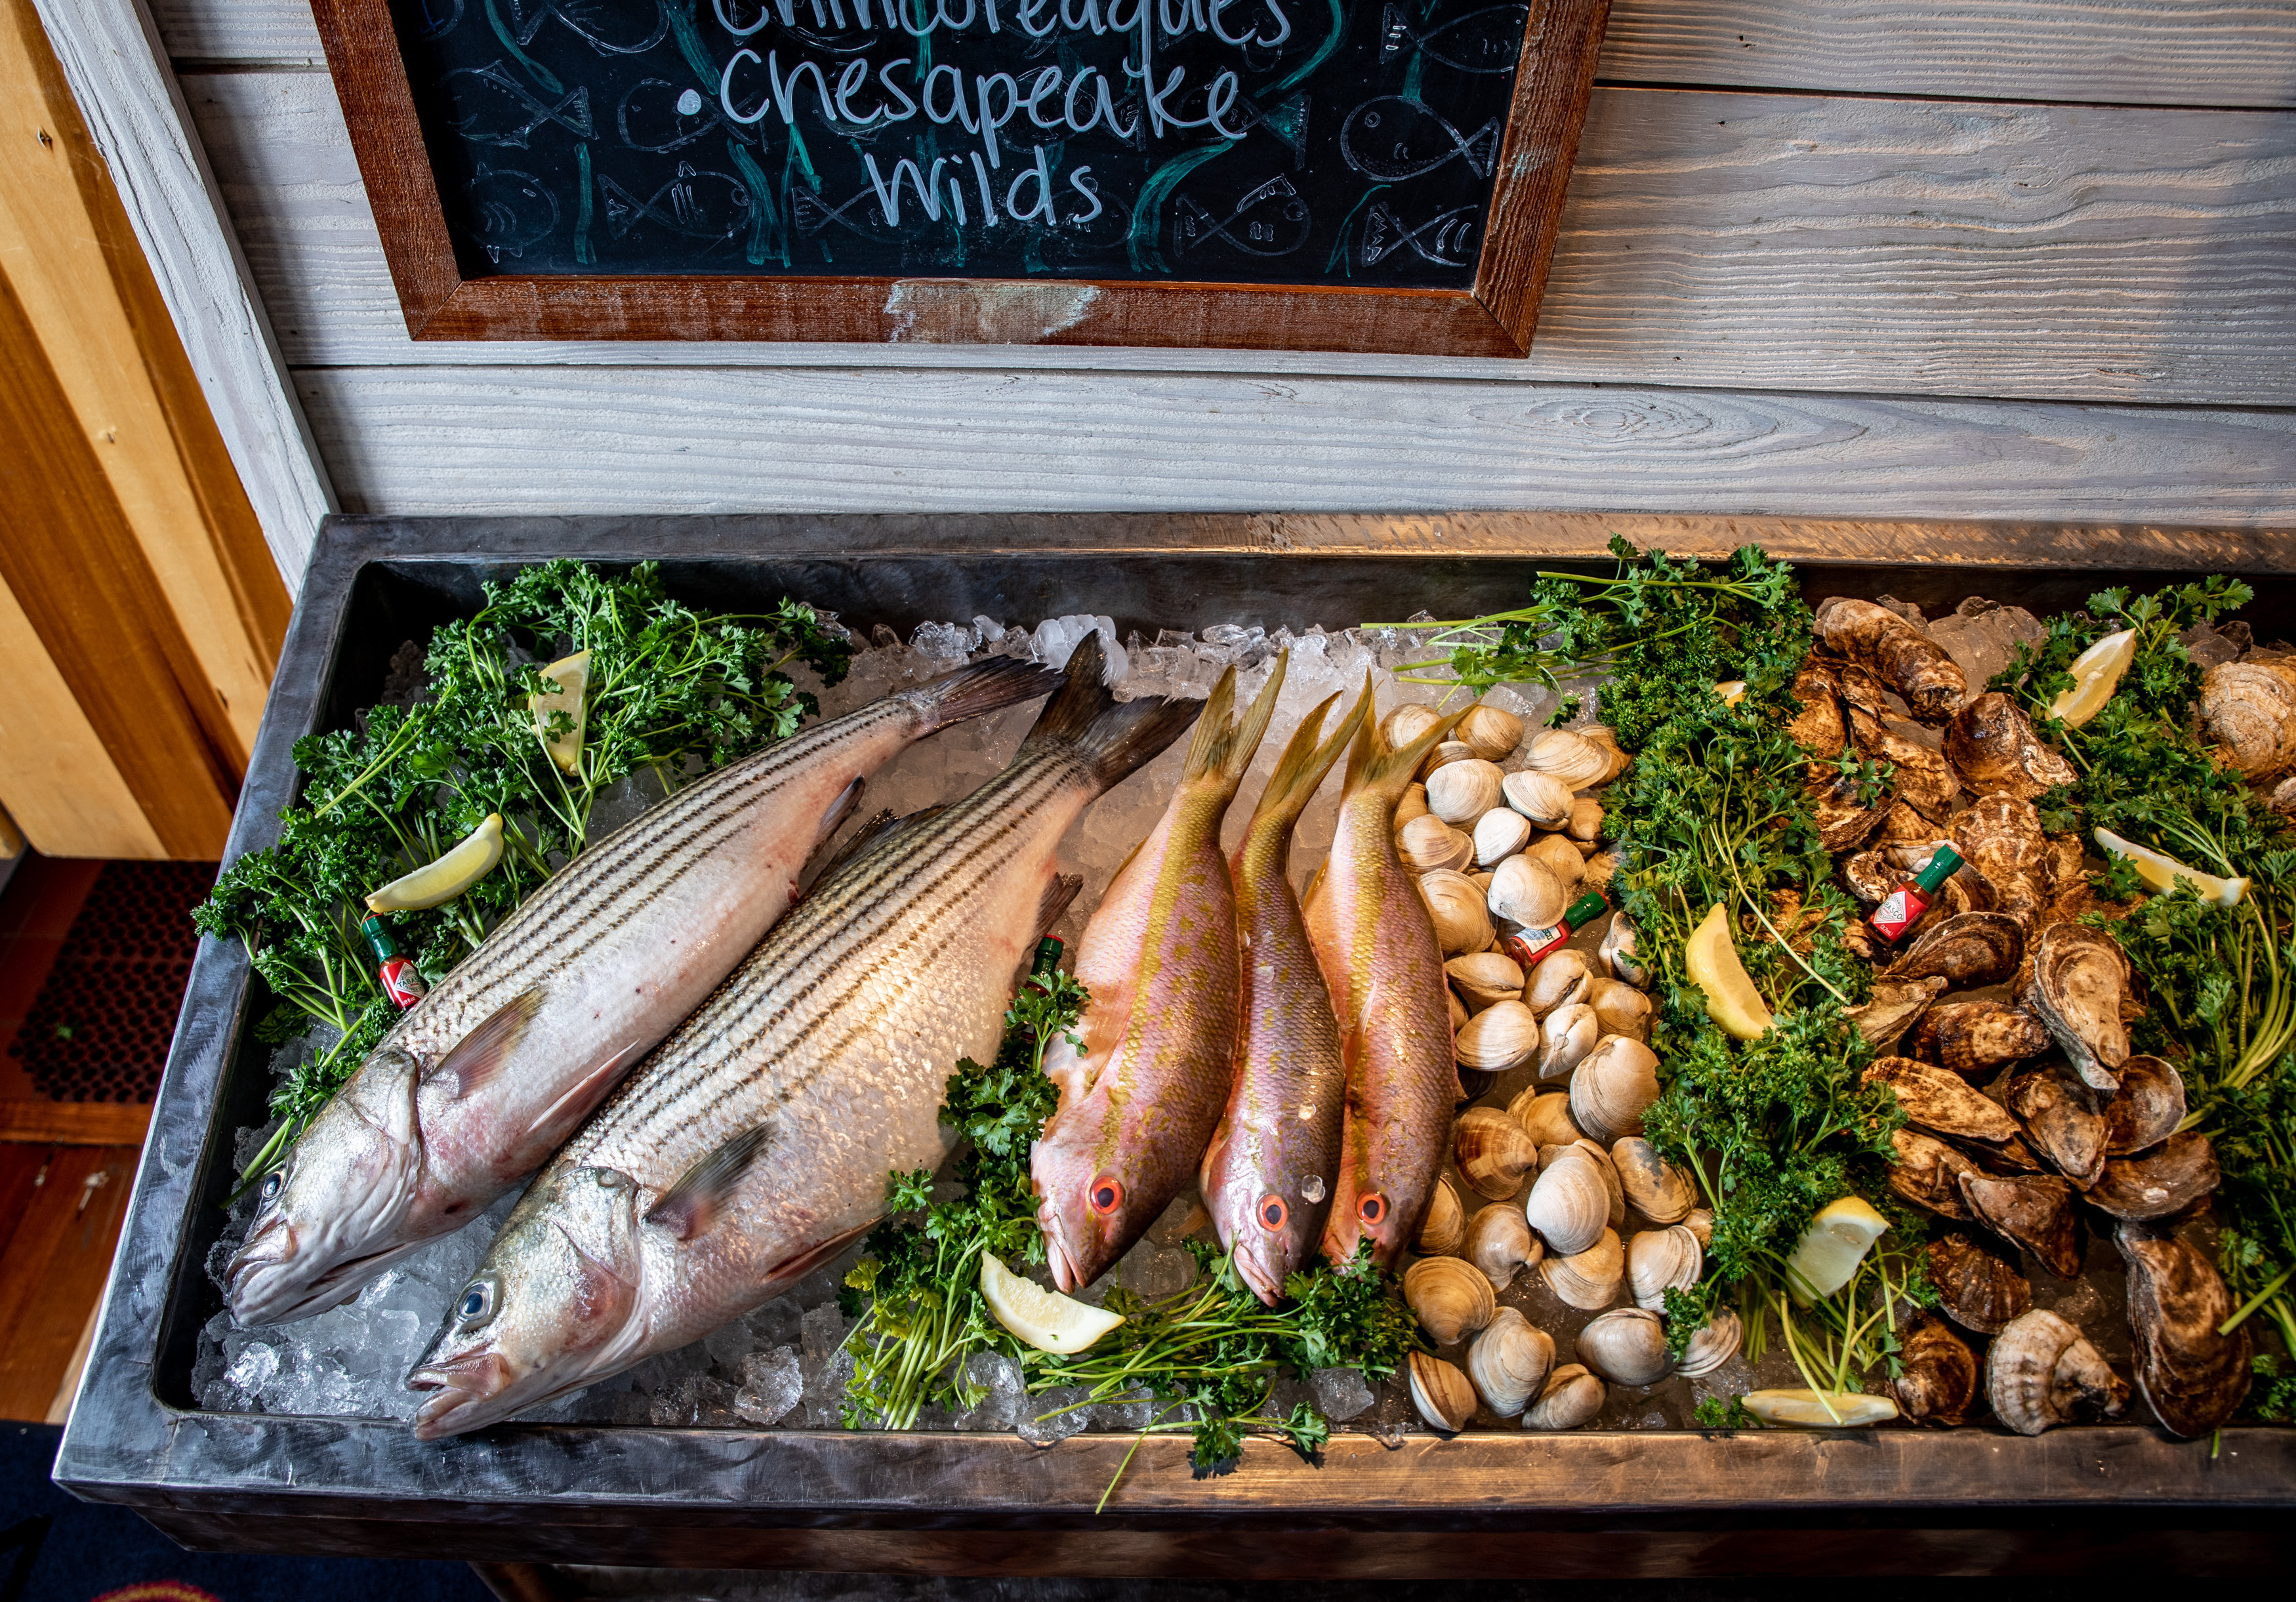 fresh fish at Blue Point Provisions in the Hyatt Chesapeake